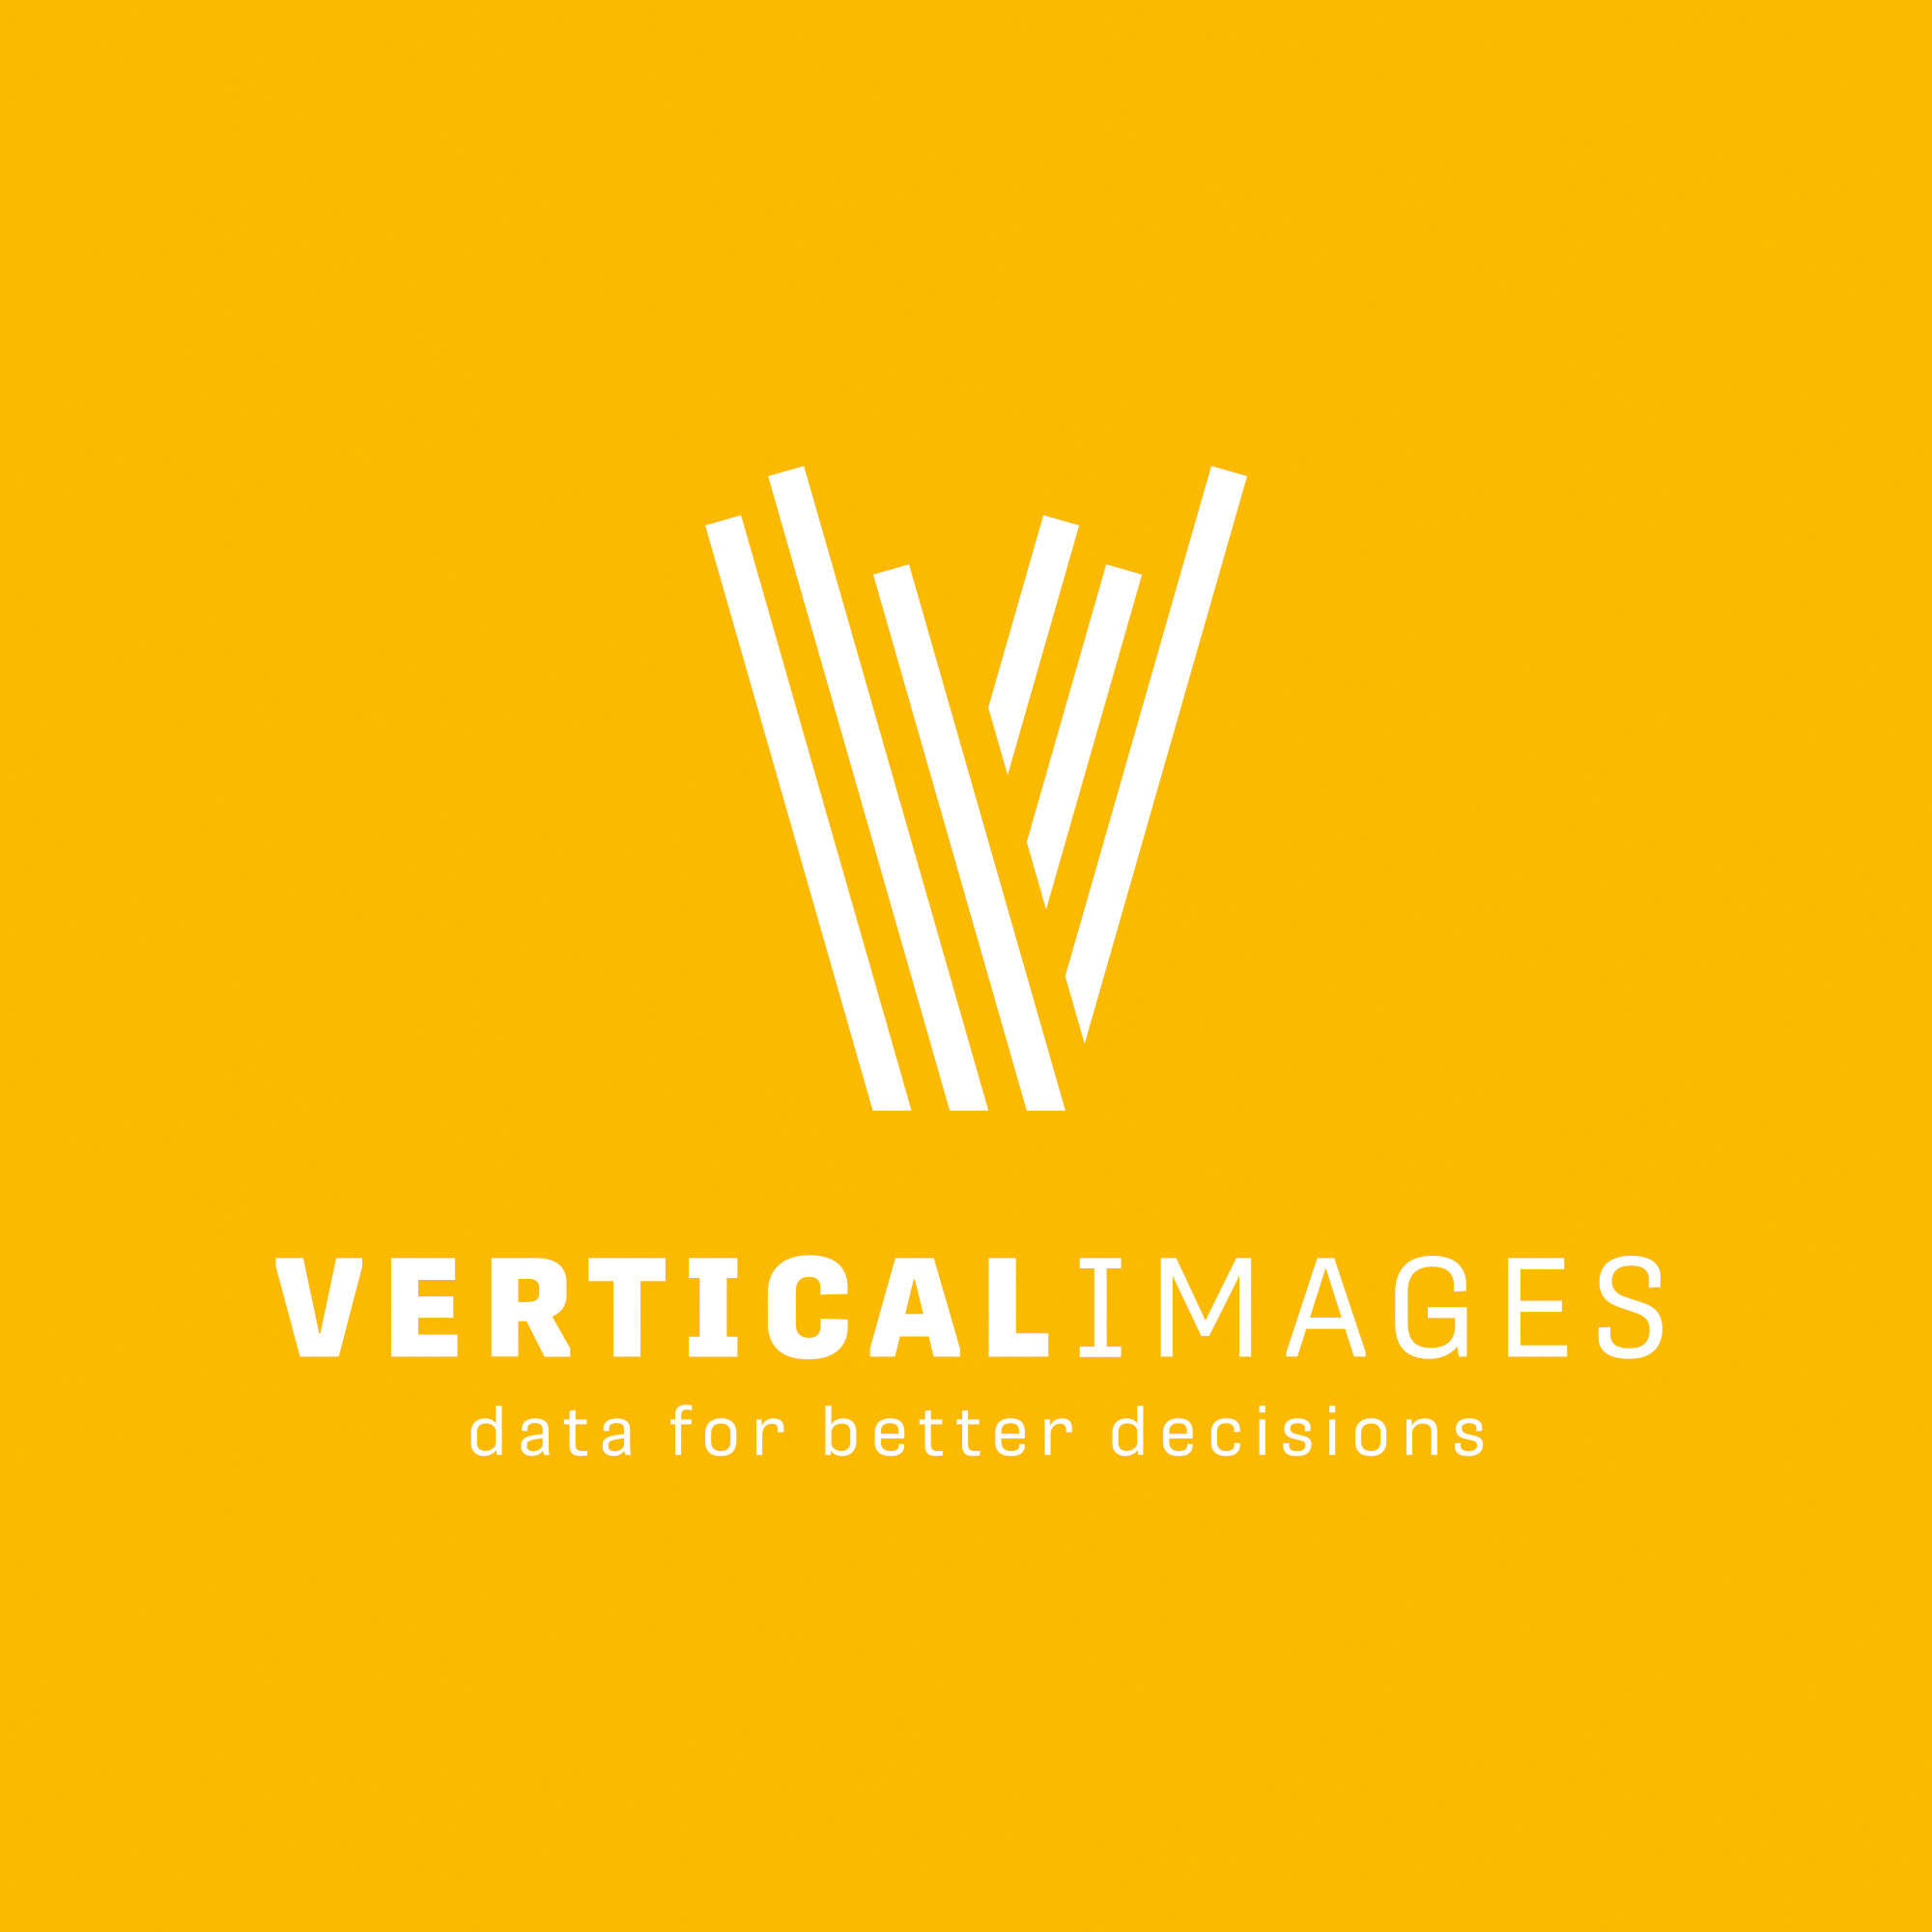 [album/Products_Model_Product/119/Vertical_IMAGES_logo_4c_inv_Y.jpg]